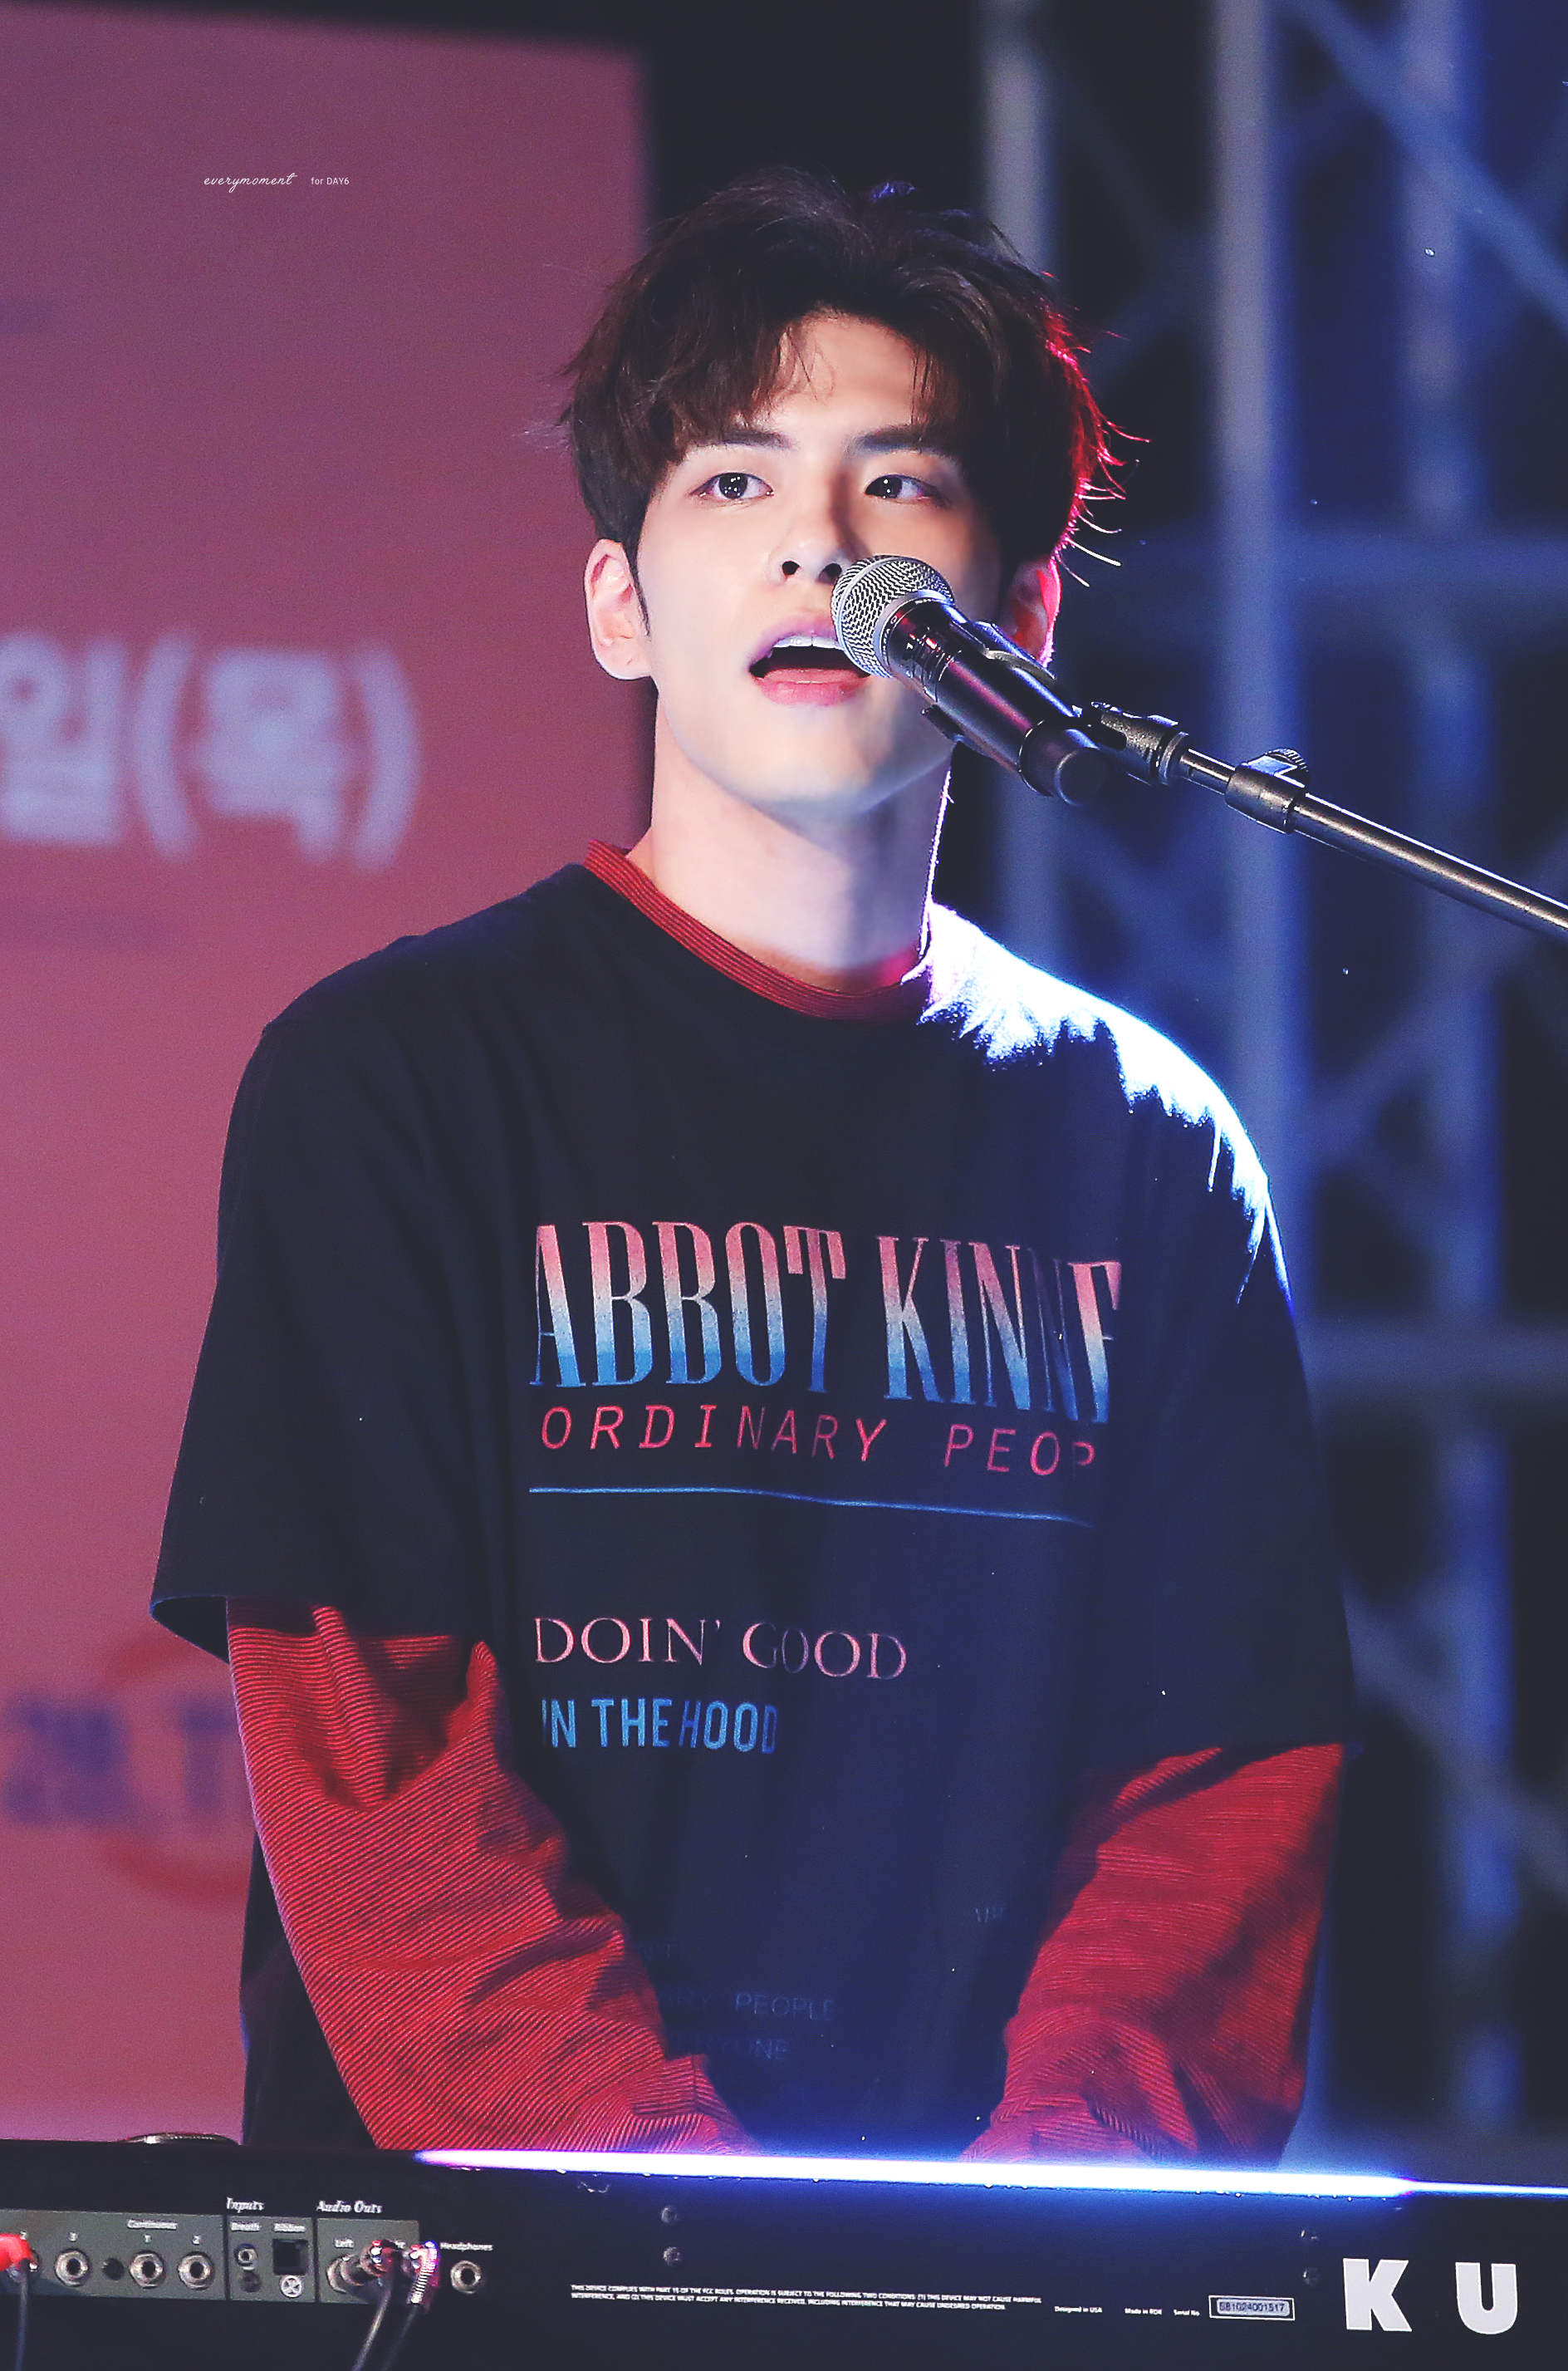 day6, day6 height, day6 tallest, day6 shortest, day6 members, day6 facts, day6 wonpil, wonpil